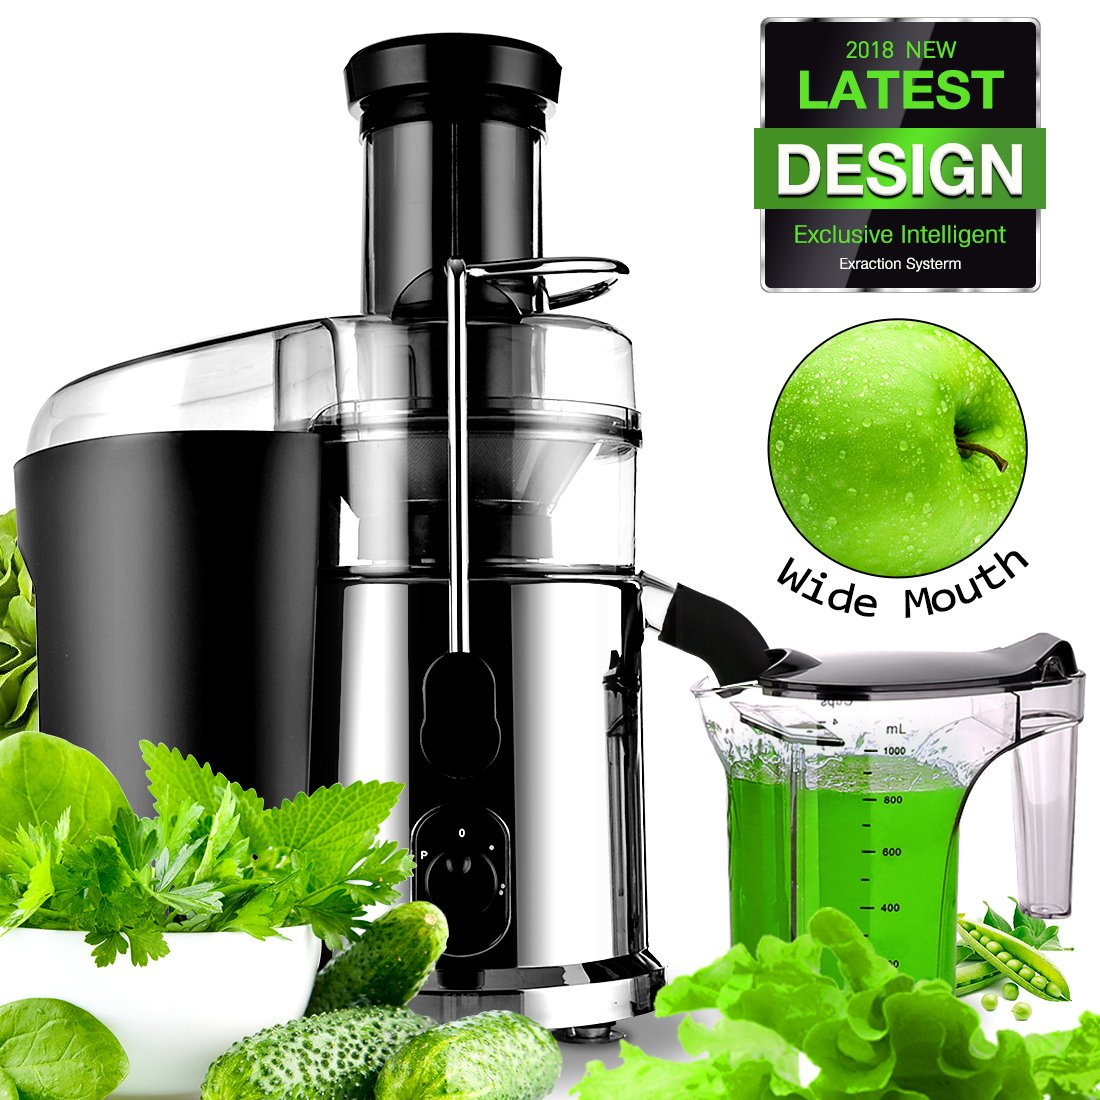 Electric Juicer Centrifugal Juicers Fruit, Veggies, Greens Juice Extractor Juicer with 1Liter Juice Cup Fruit Squeezer 850Watt Juice Maker Stainless Steel for Hard/Soft Fruits and Greens